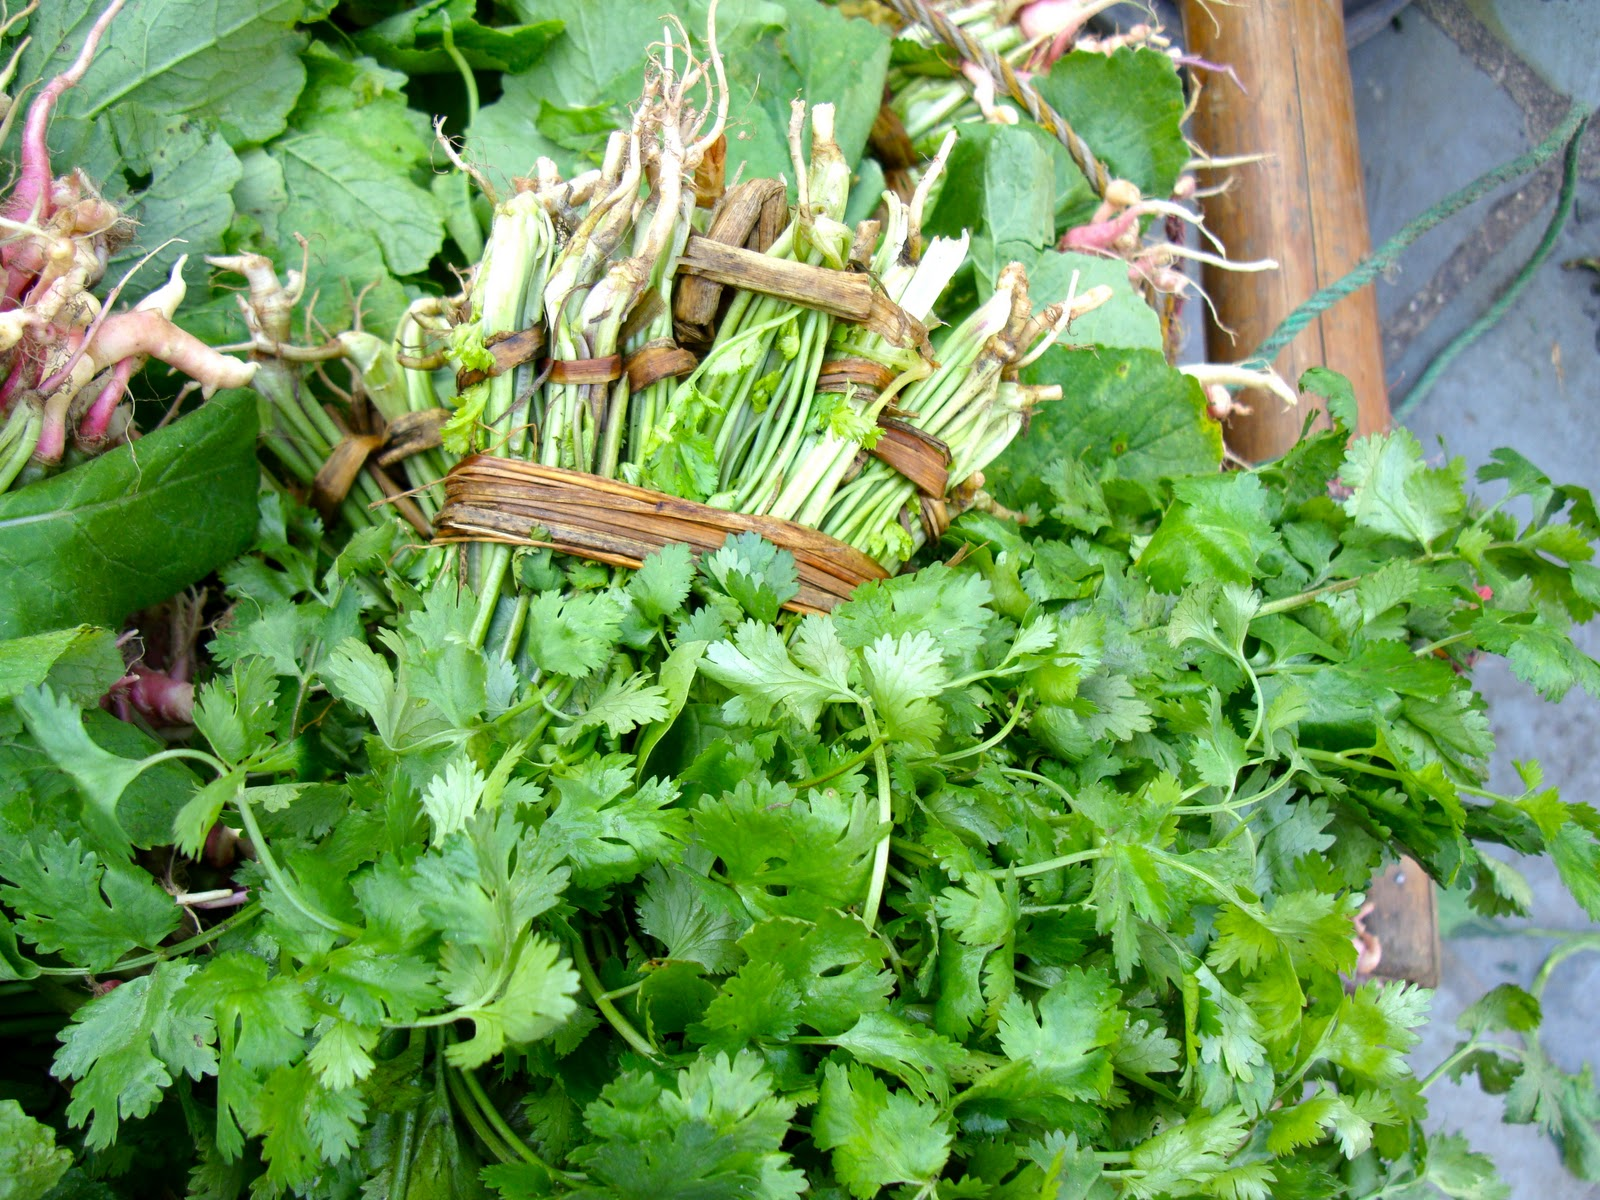 Taste of nepal november 2011 freshly picked cilantro is sold neatly tied in bunches with stems and roots in nepali markets stopboris Gallery